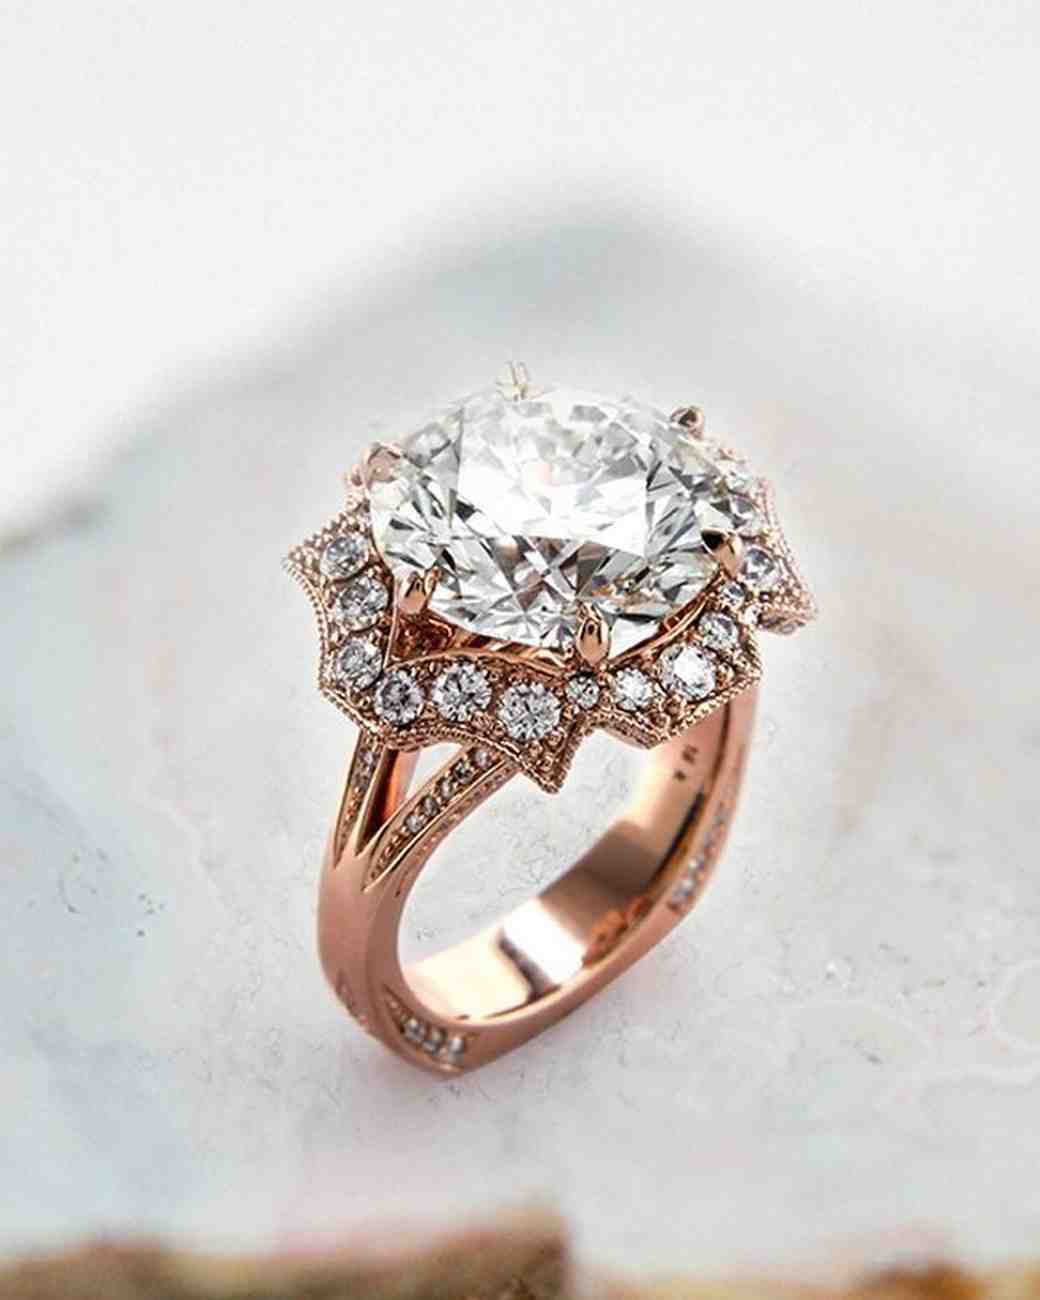 21 unique engagement rings you 39 ll love martha stewart weddings. Black Bedroom Furniture Sets. Home Design Ideas